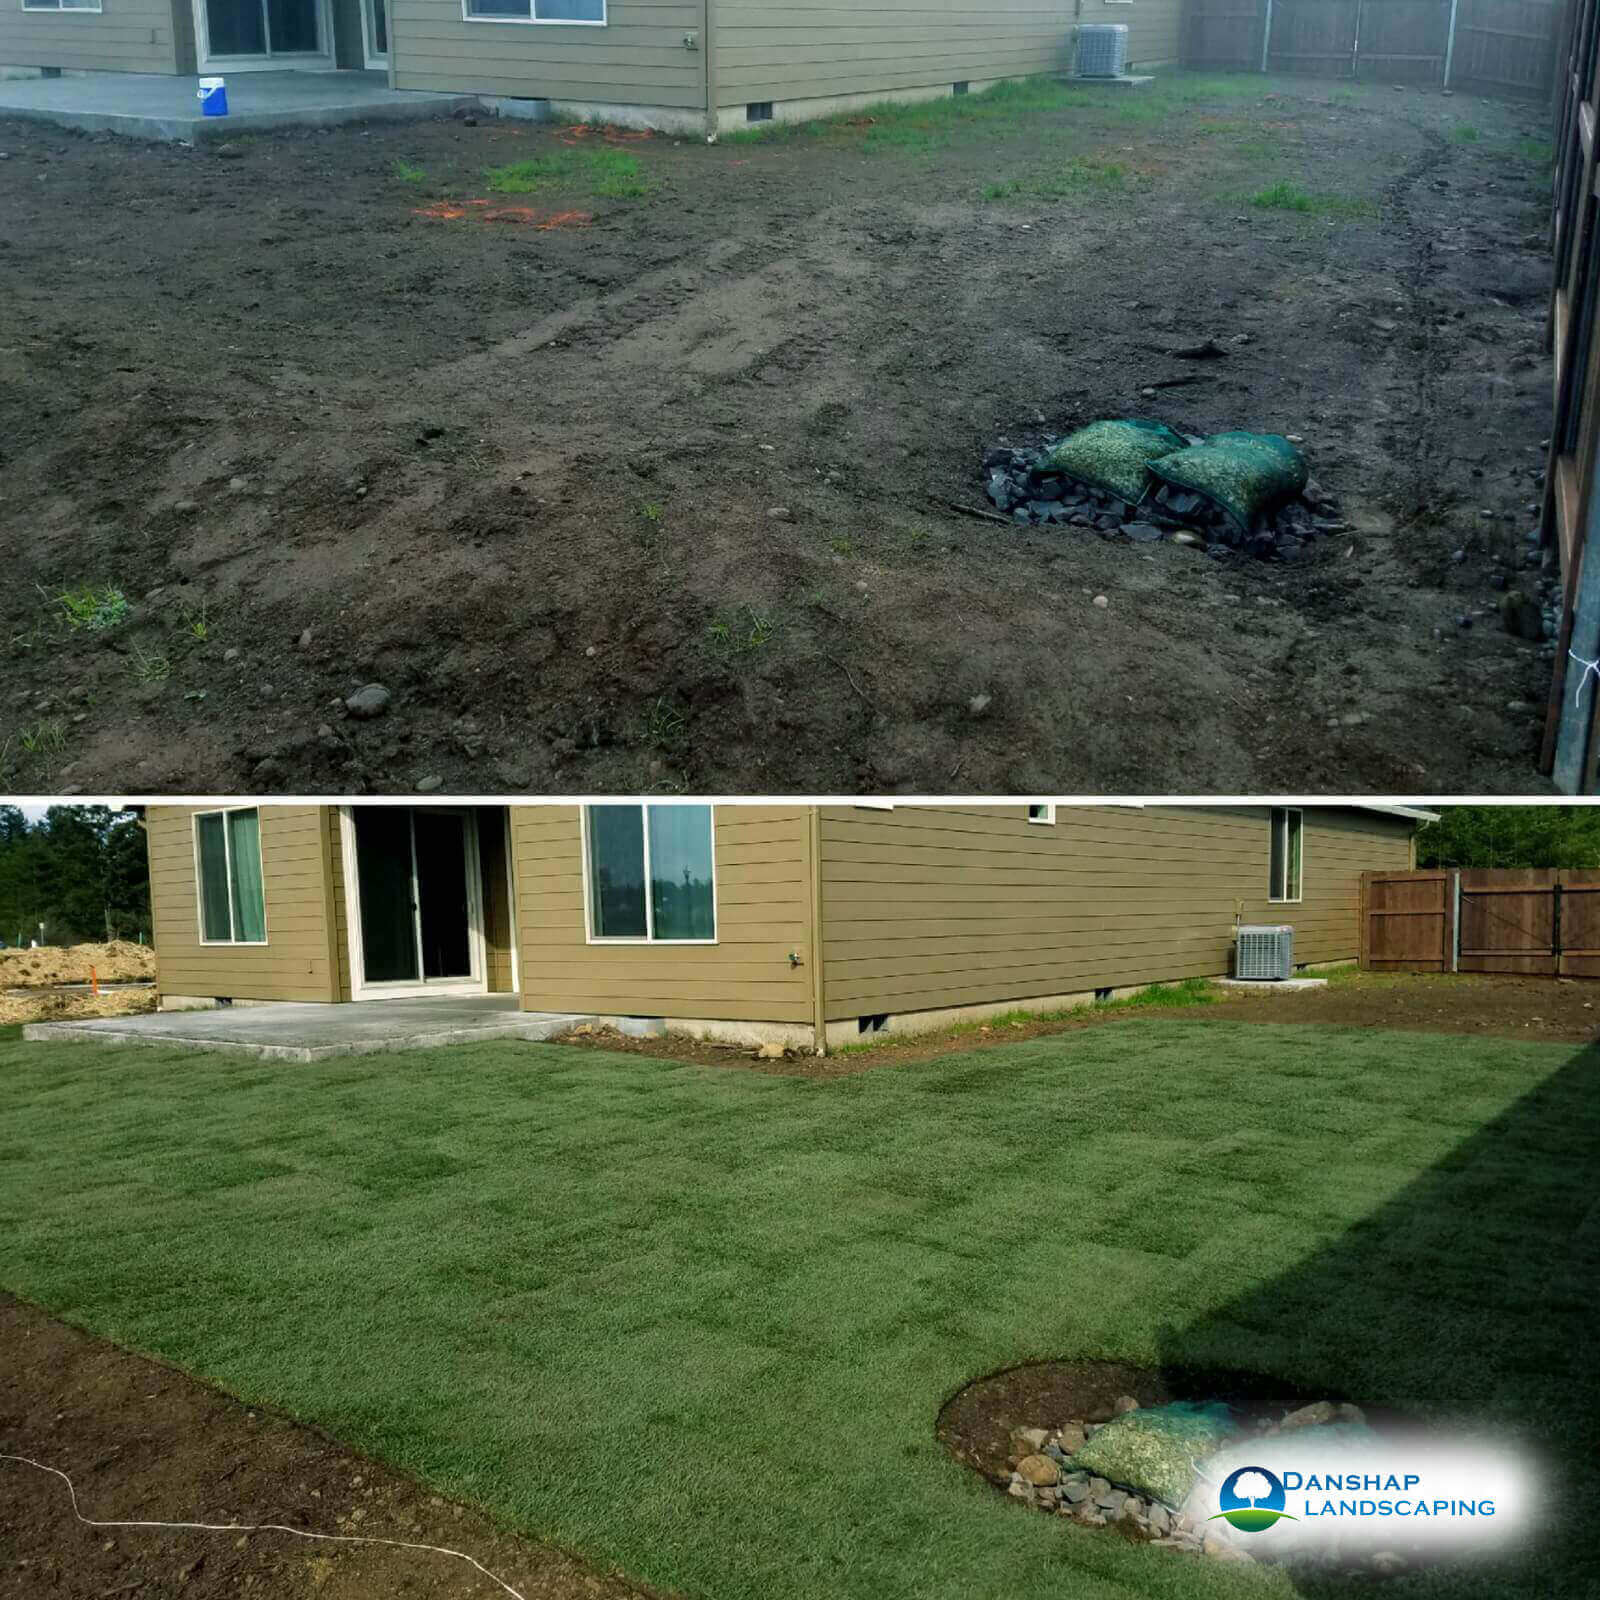 Sod-Replacement-Danshaplandscape-7